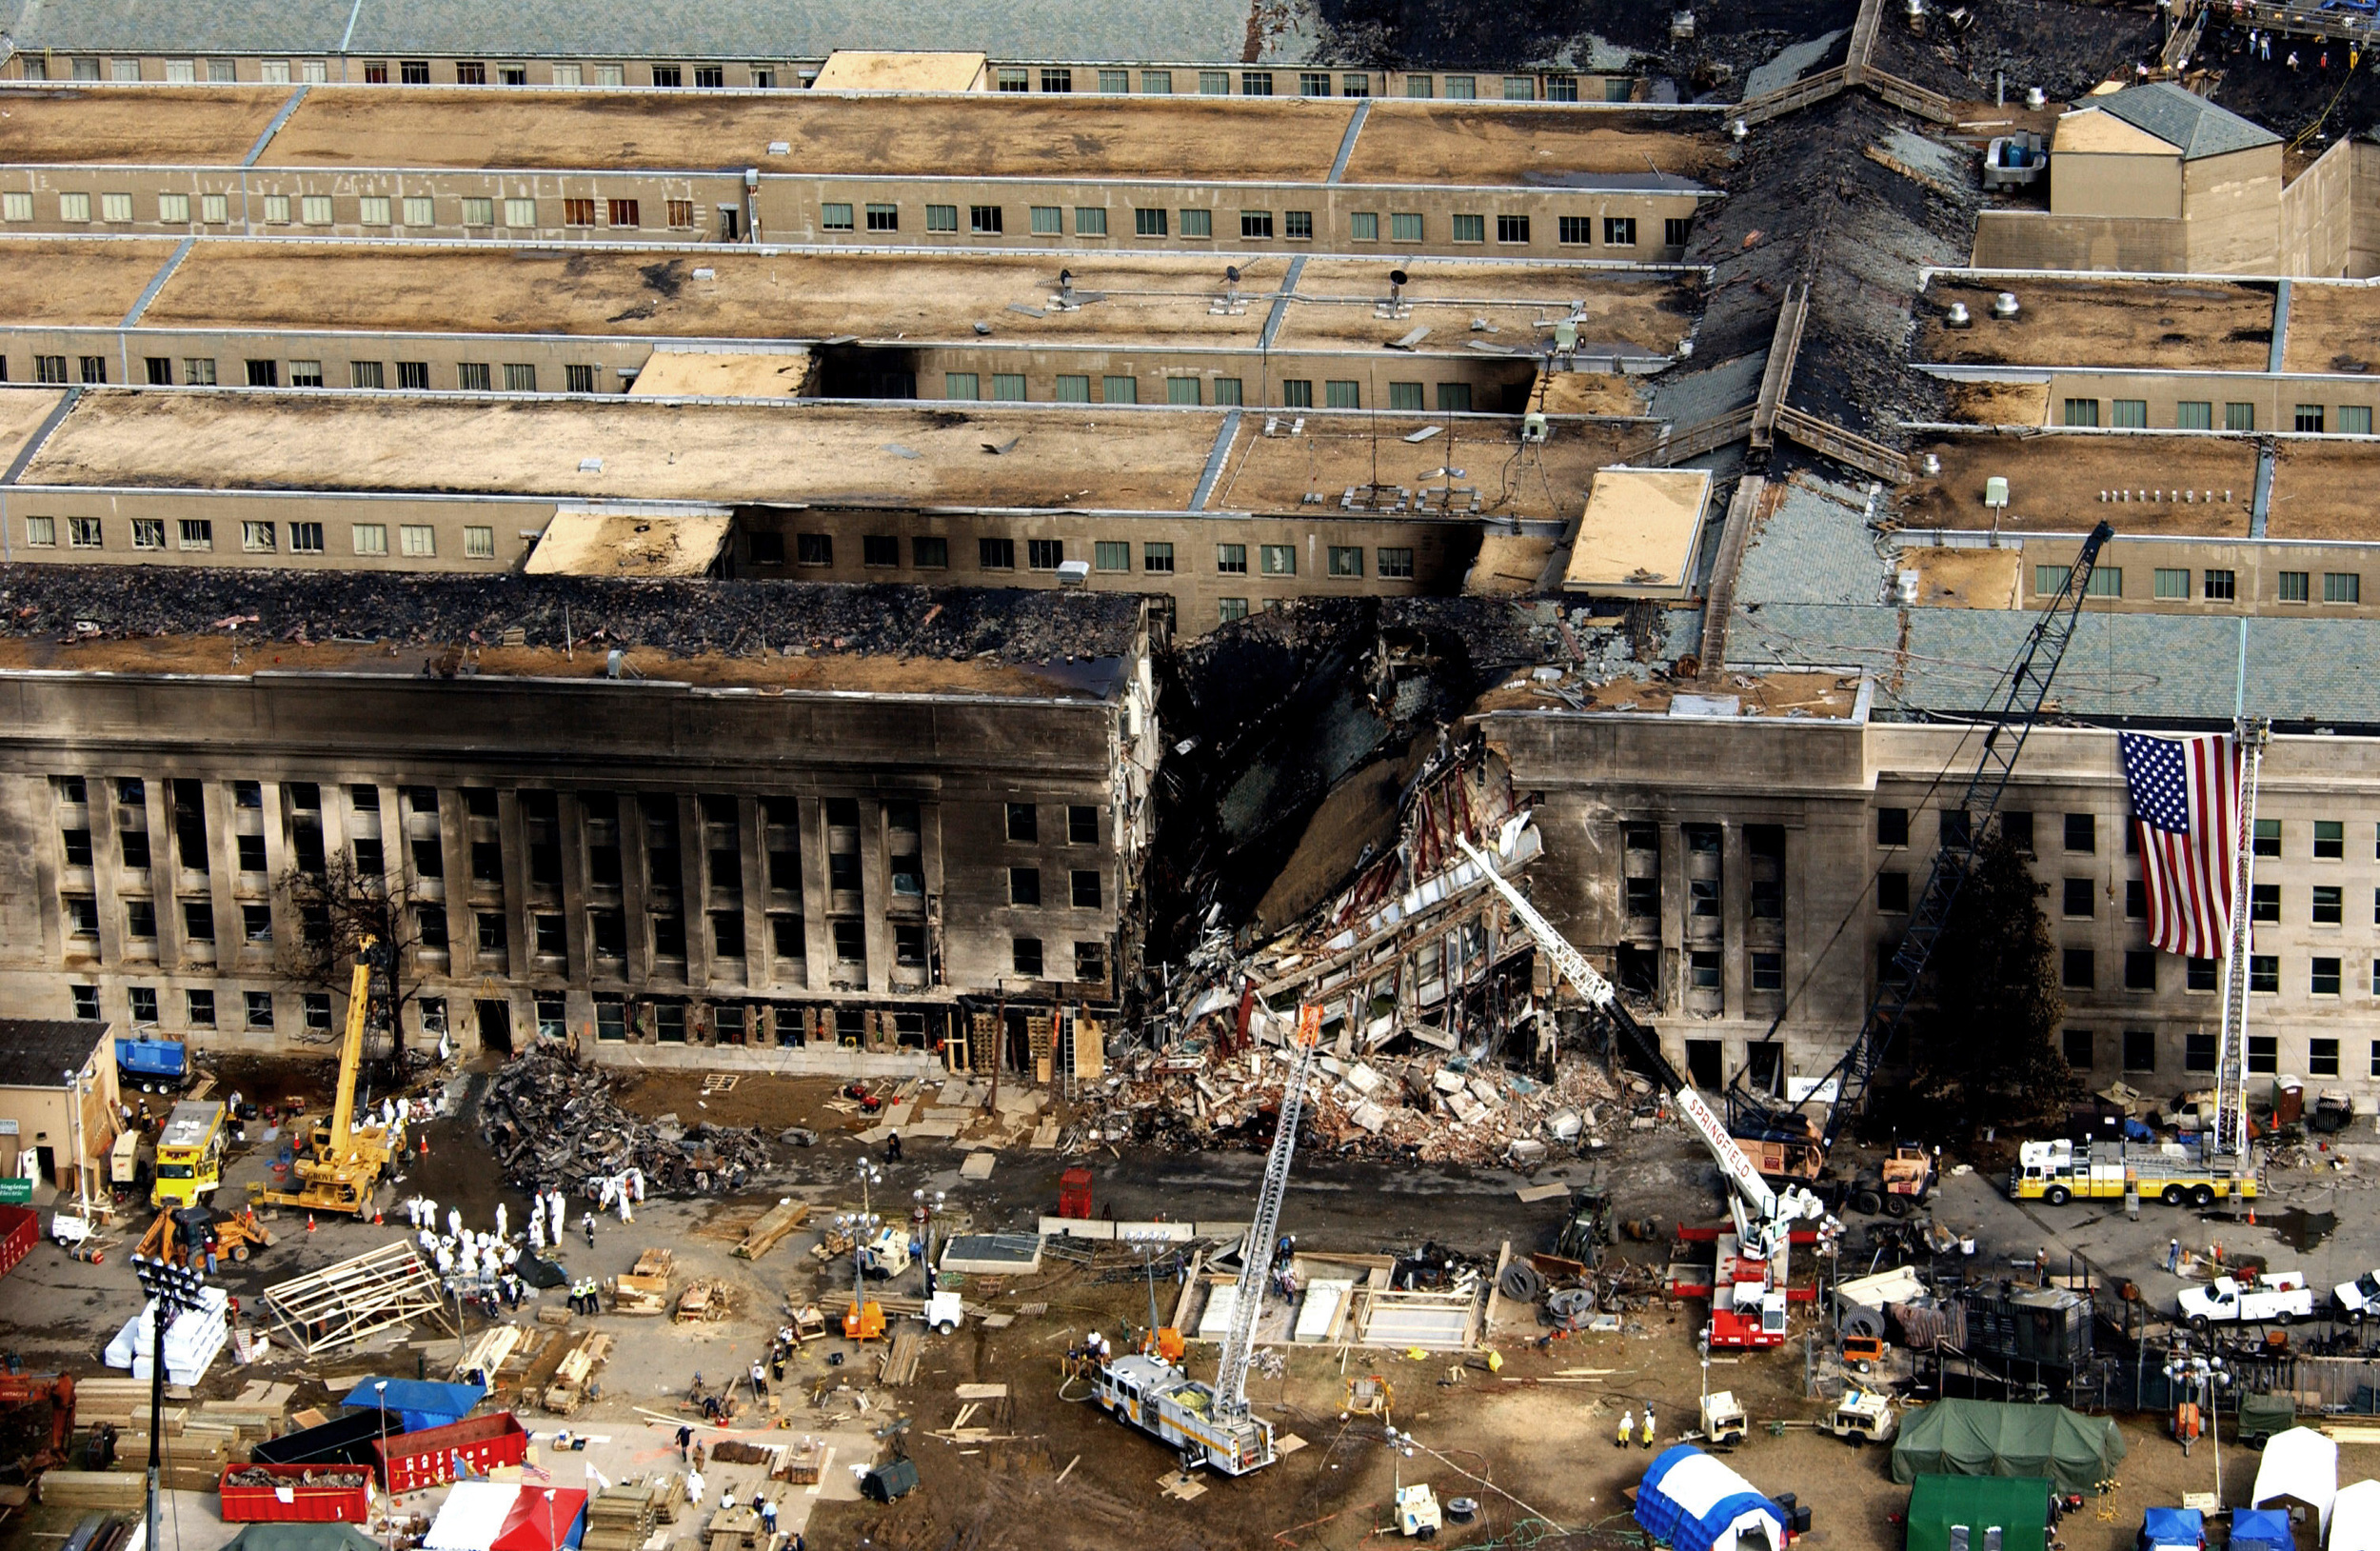 Aerial view of the Pentagon during rescue operations after the September 11, 2001 attack. Photo from Wikipedia.